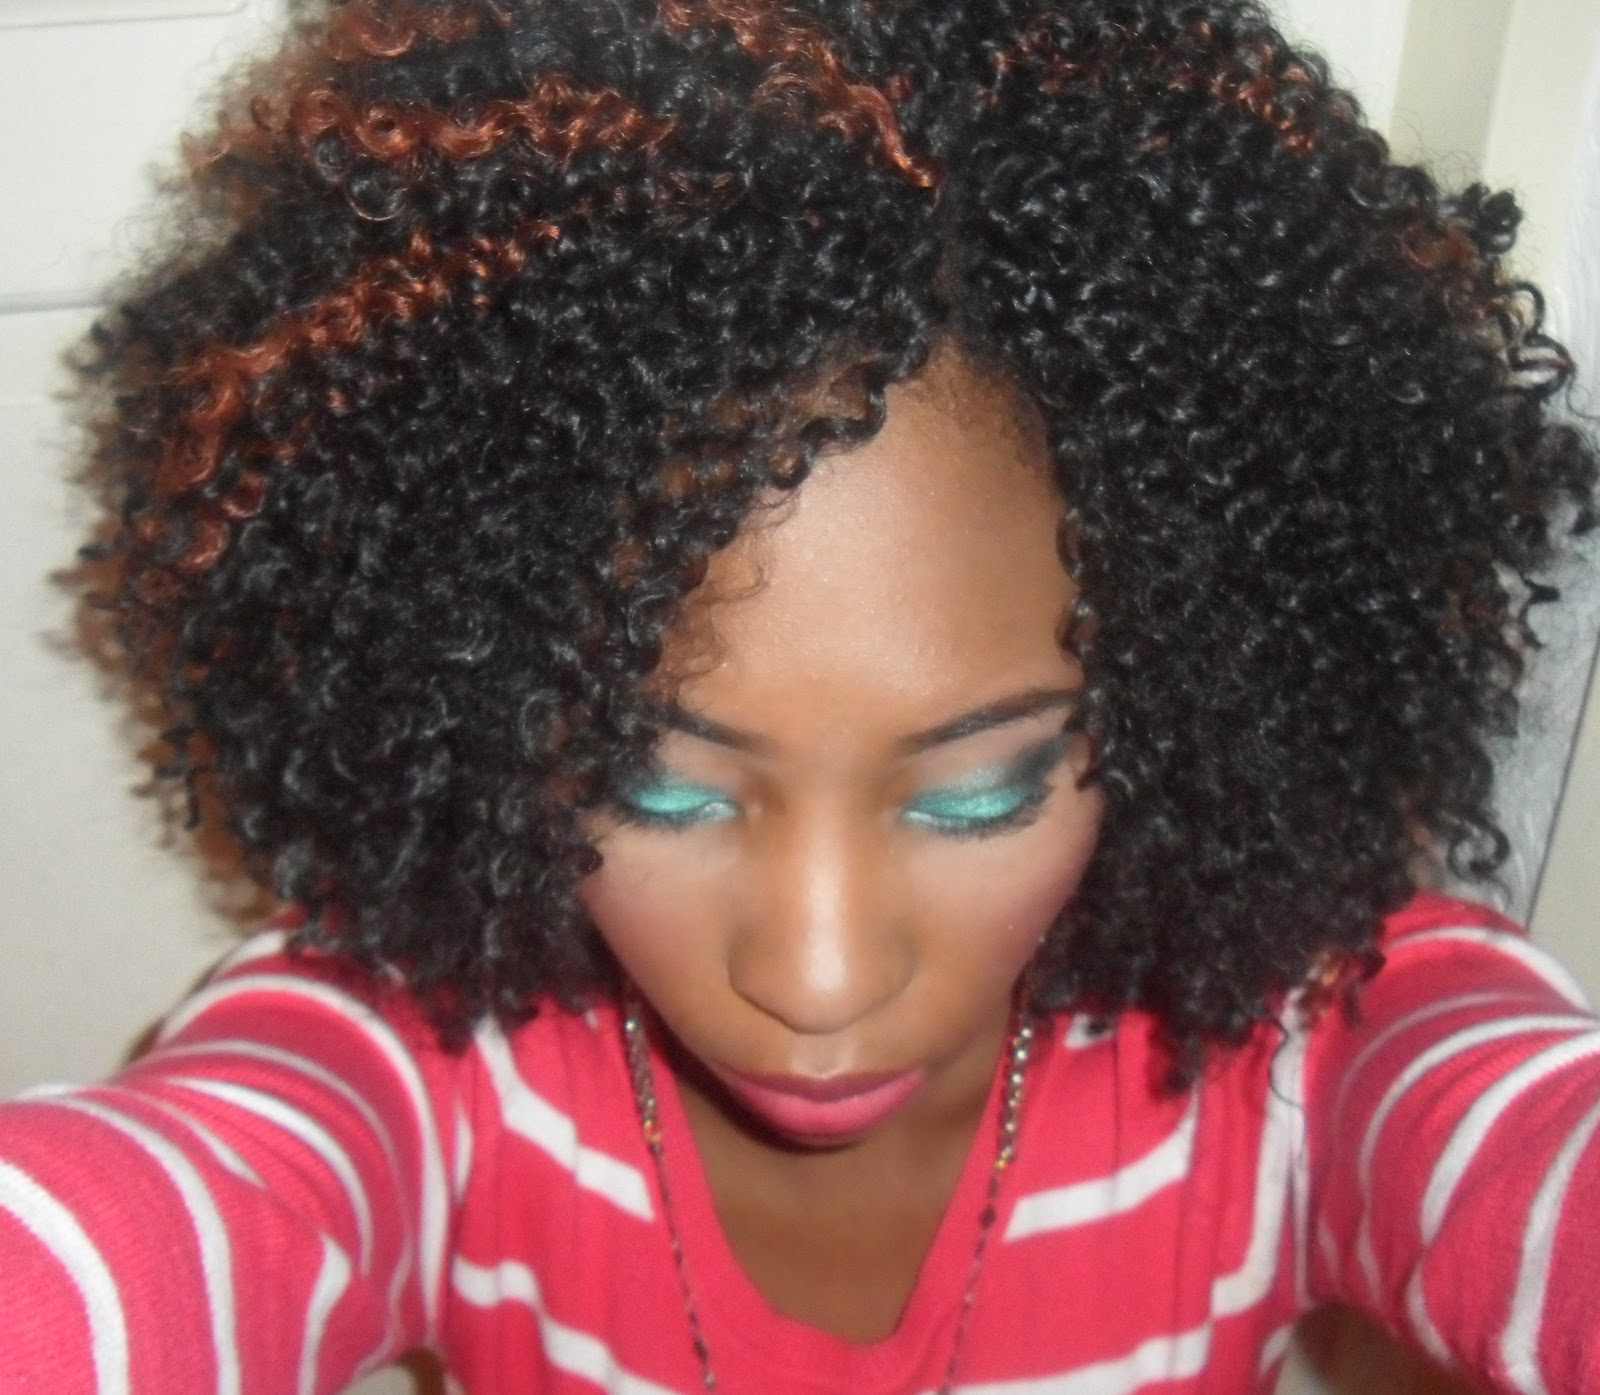 Crochet Braids Good For Your Hair : If you are interested in learning how to do crochet braids, here is a ...